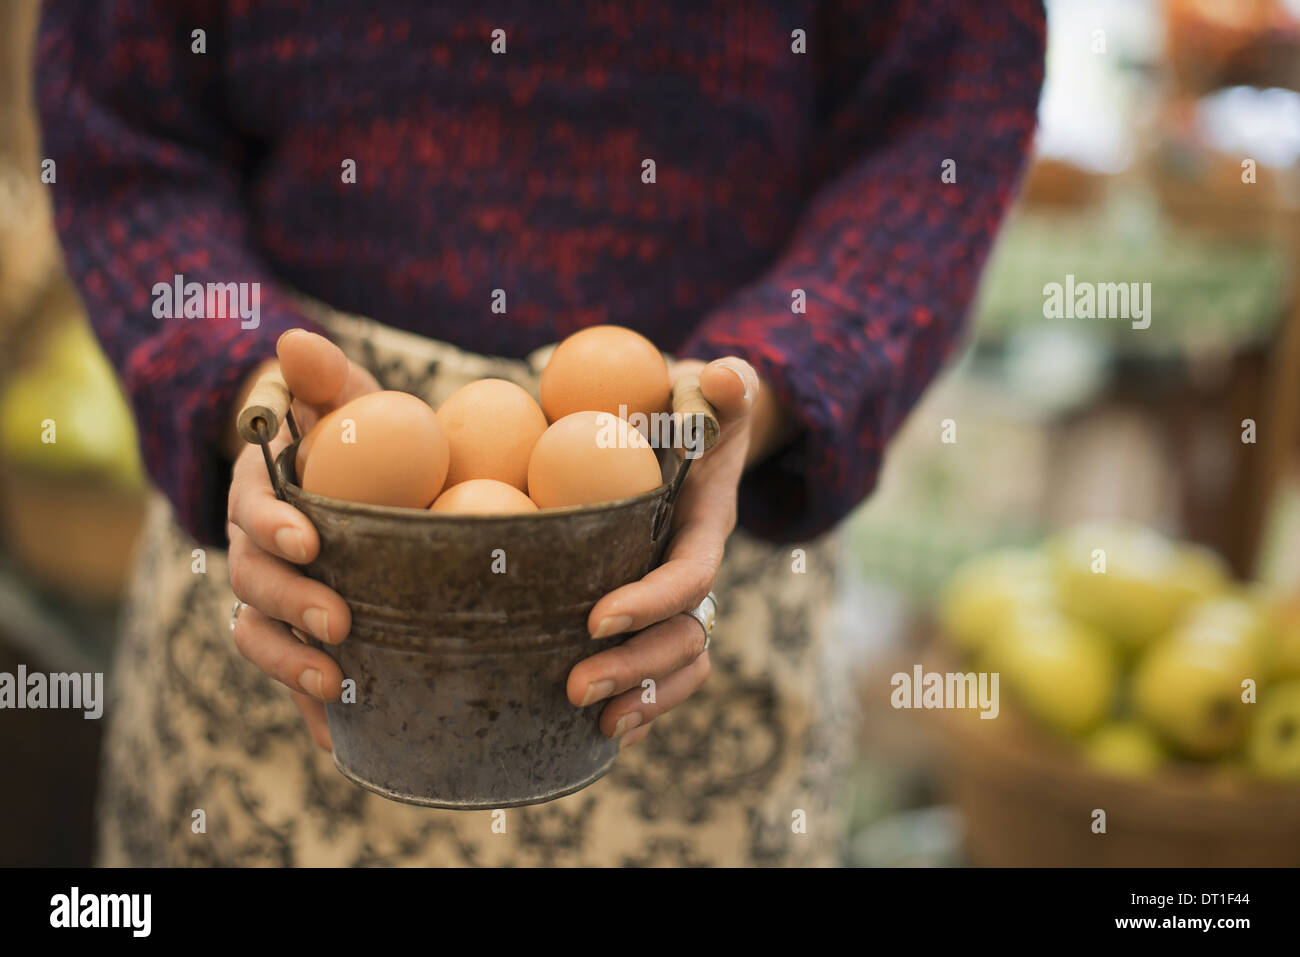 Organic Farmer at Work A woman carrying a container of eggs Stock Photo